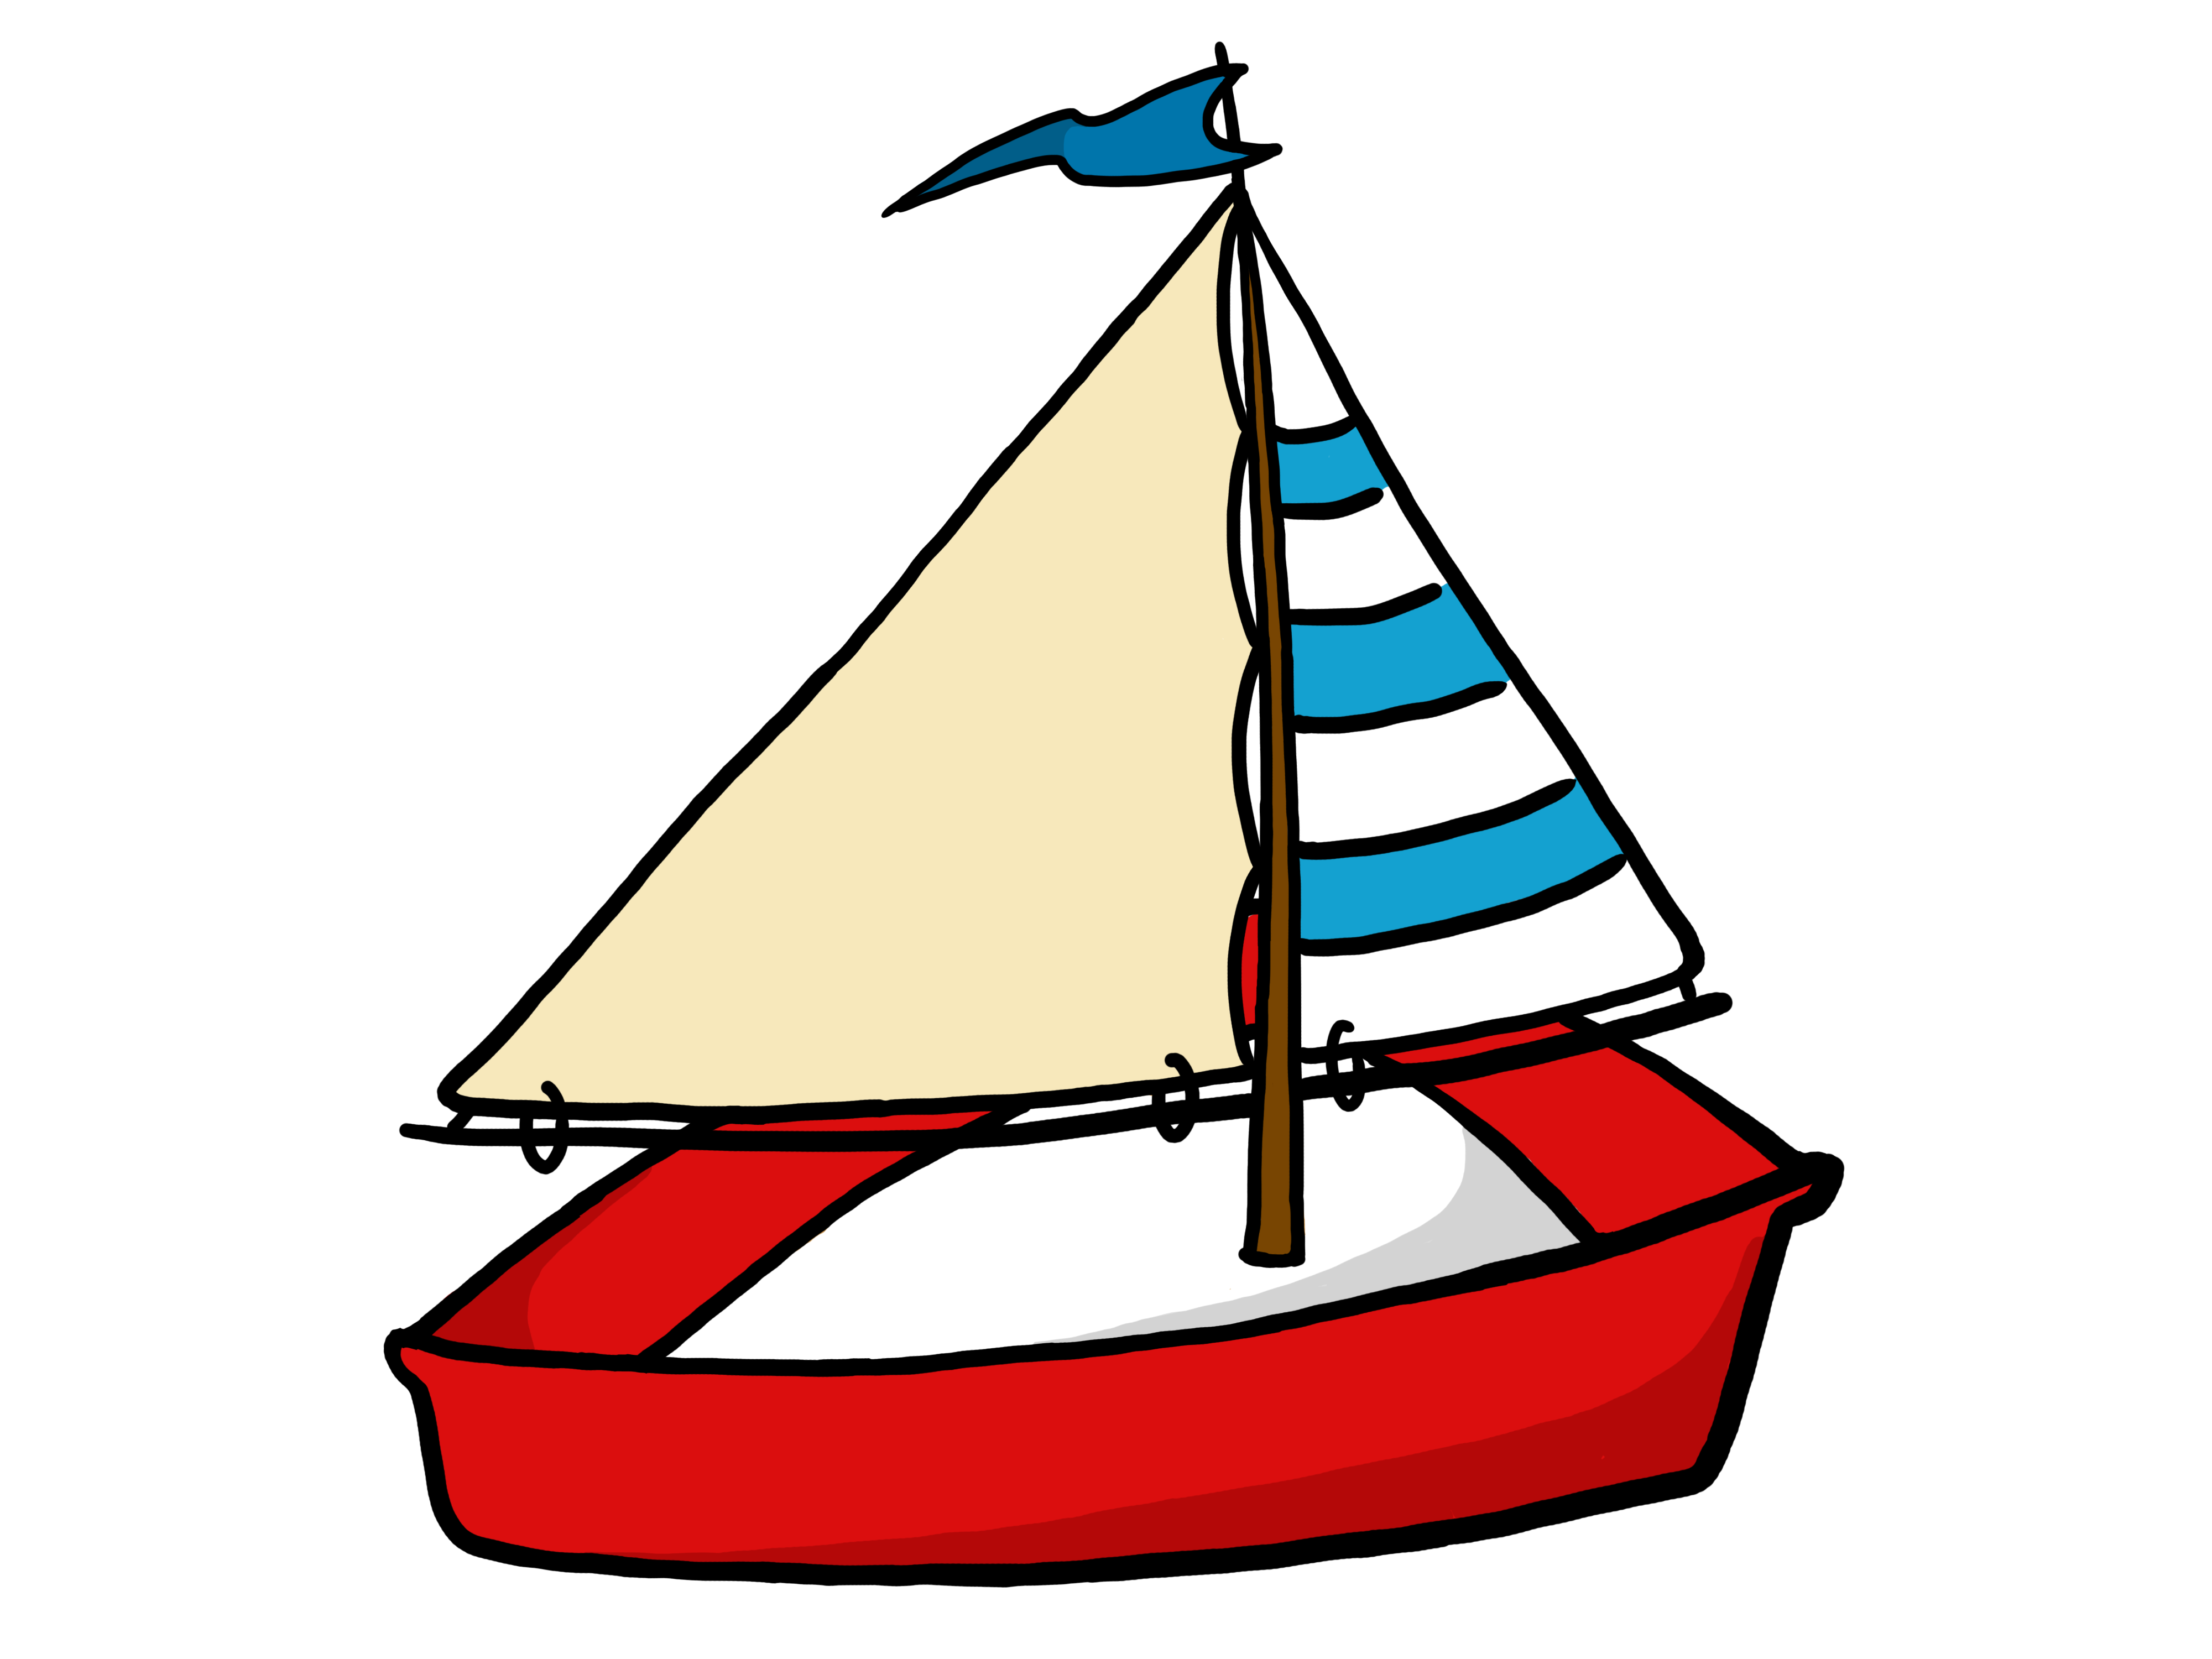 Boating Clipart | Clipart Panda - Free Clipart Images